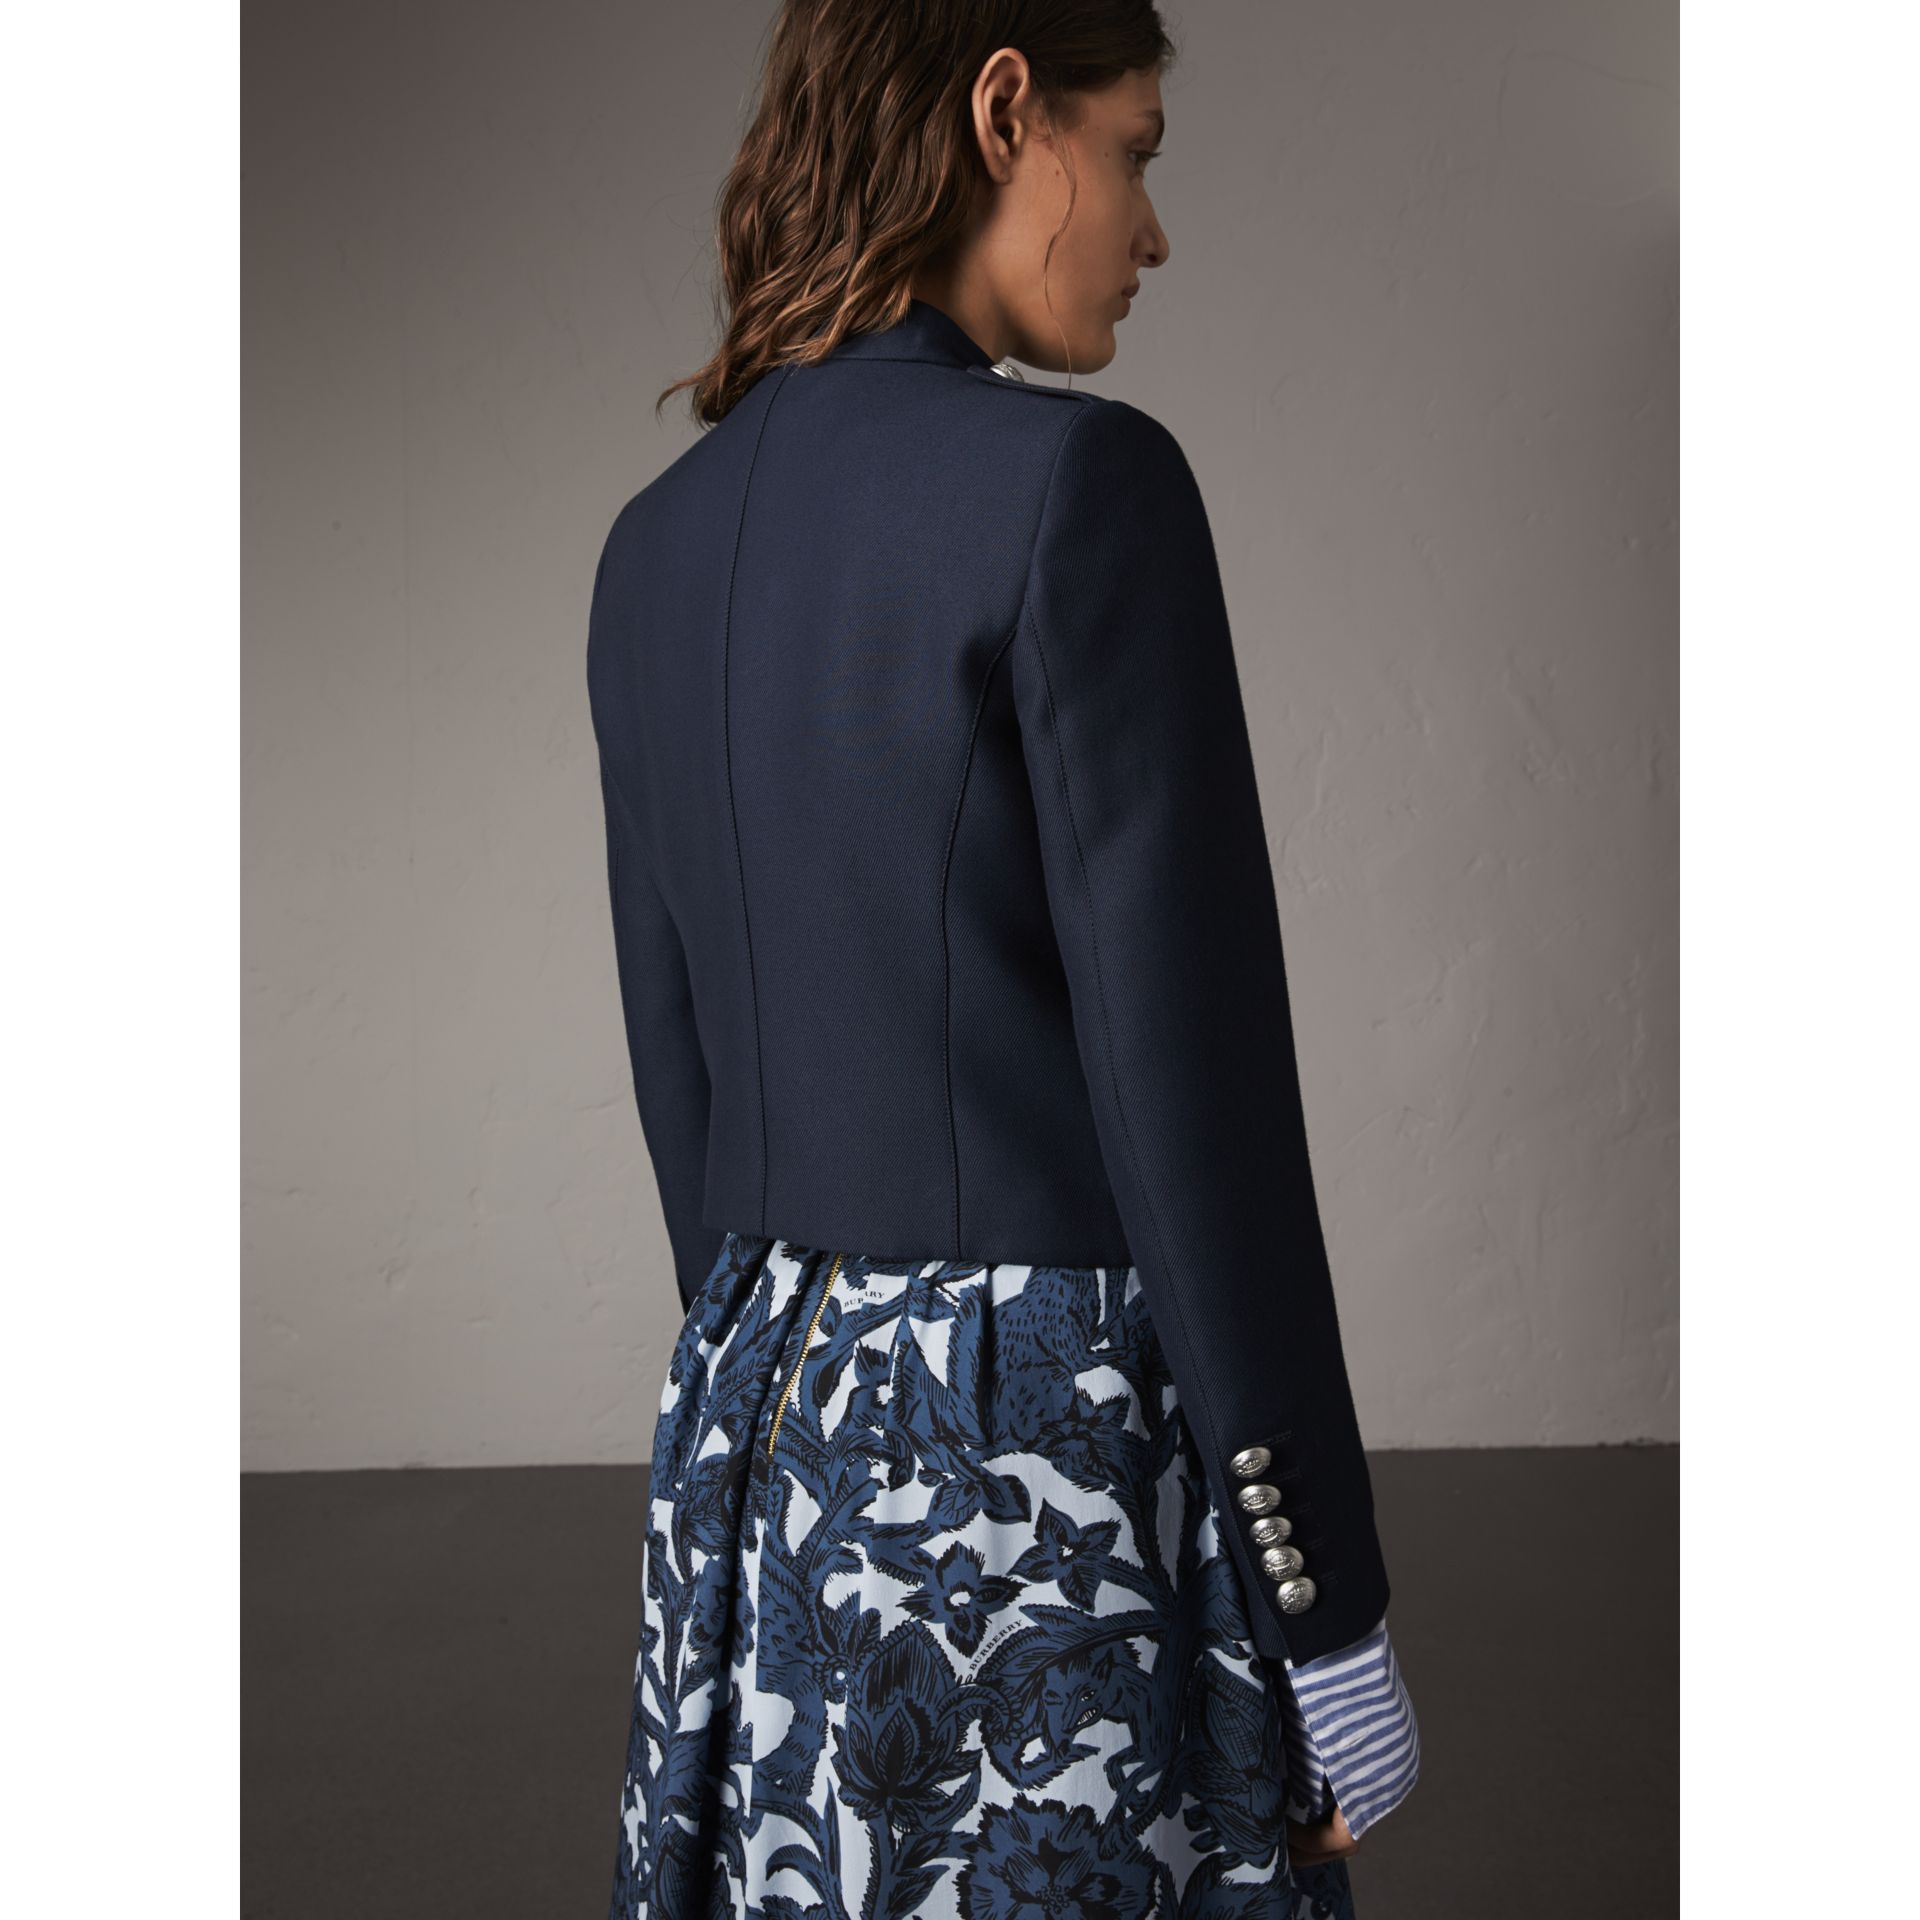 Resin Button Wool Cotton Blend Jacket in Ink Blue - Women | Burberry United States - gallery image 3